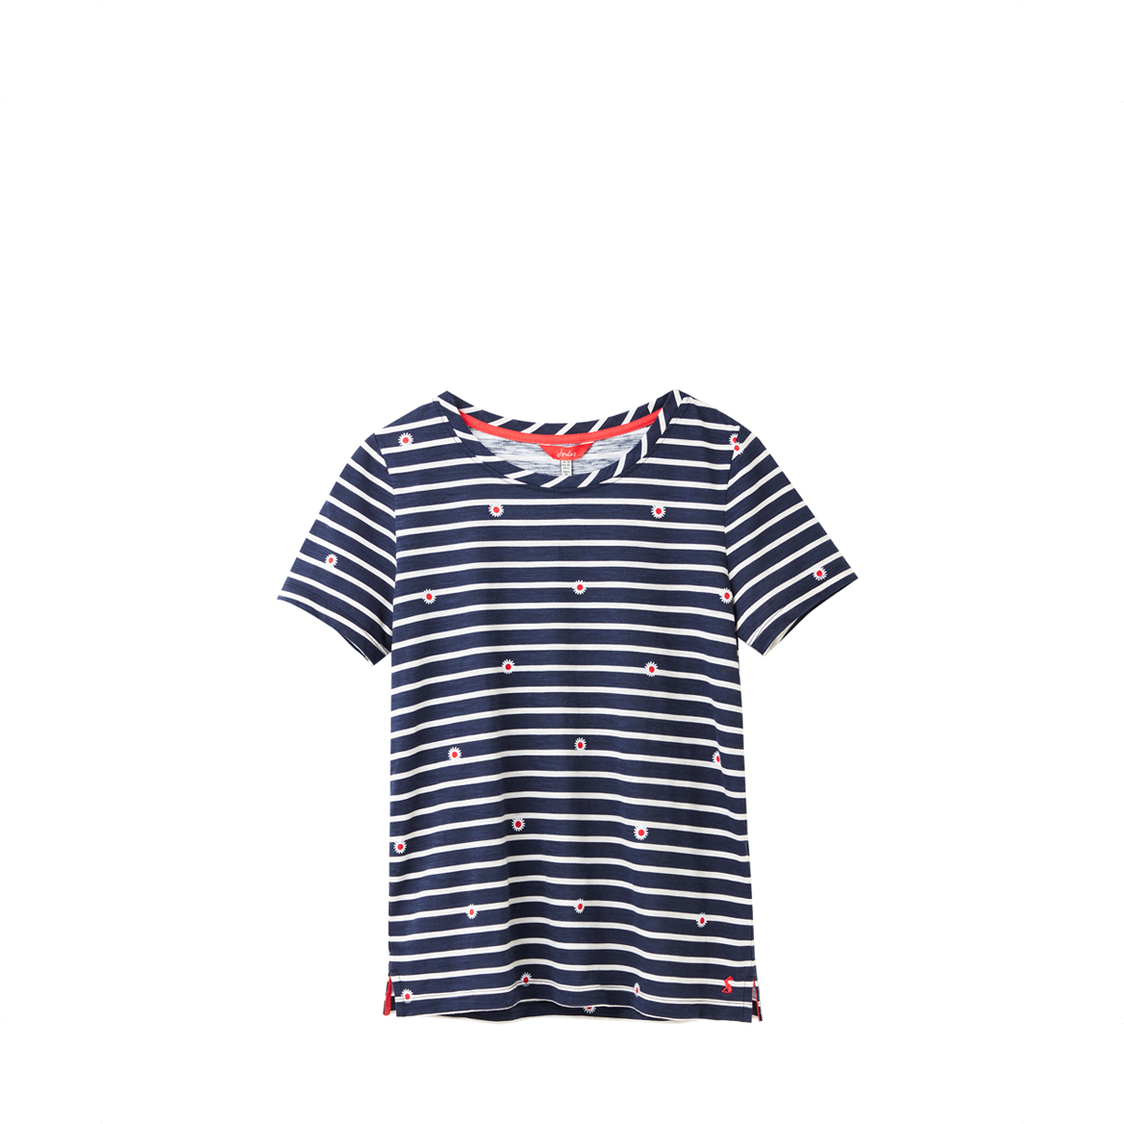 Tom Joule Carley Classic Crew Neck Top Daisy Stripe